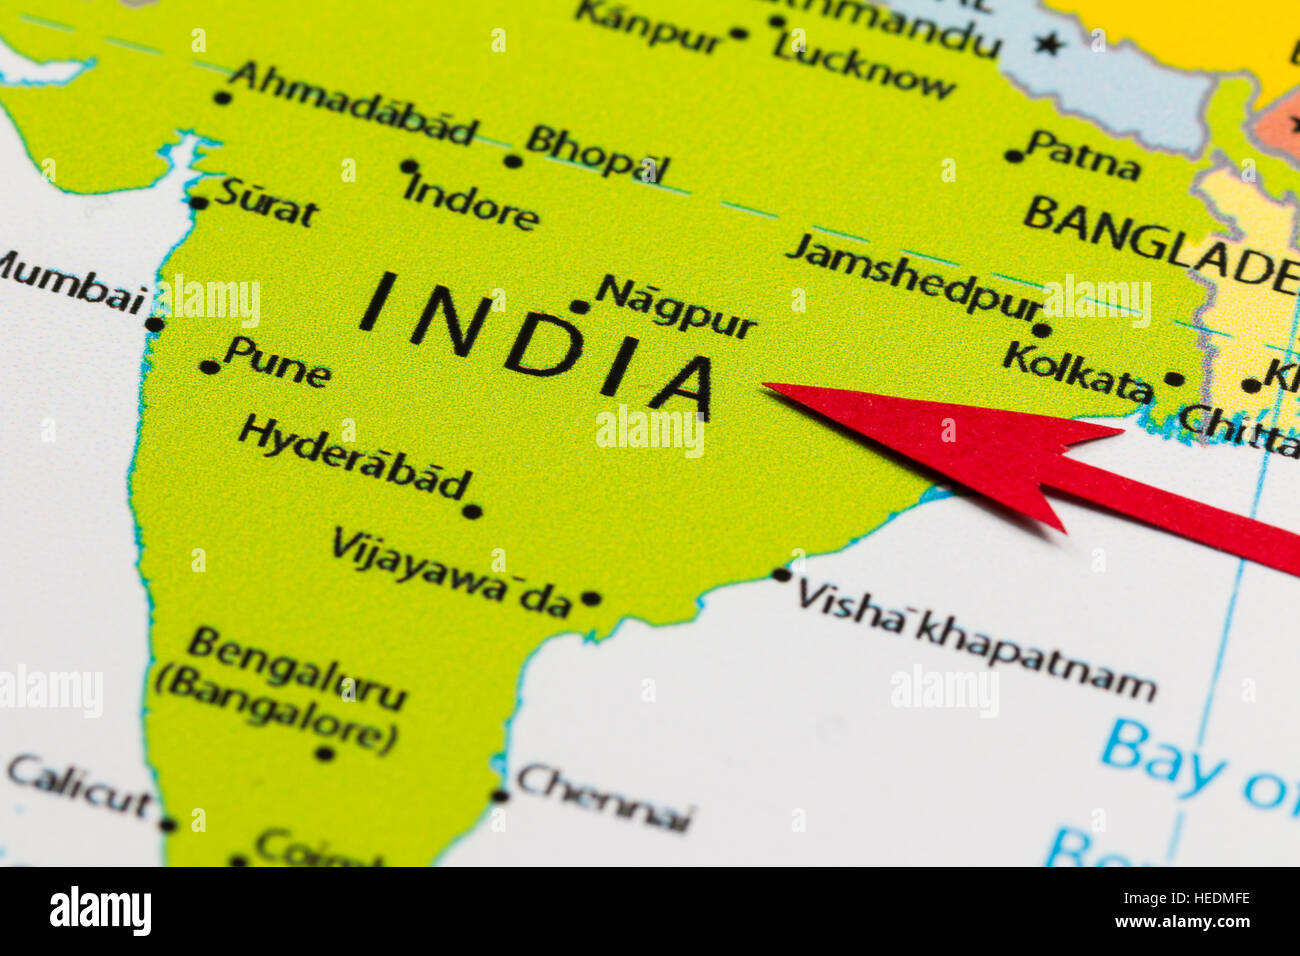 Map Of India Political.India Political Map Stock Photos India Political Map Stock Images